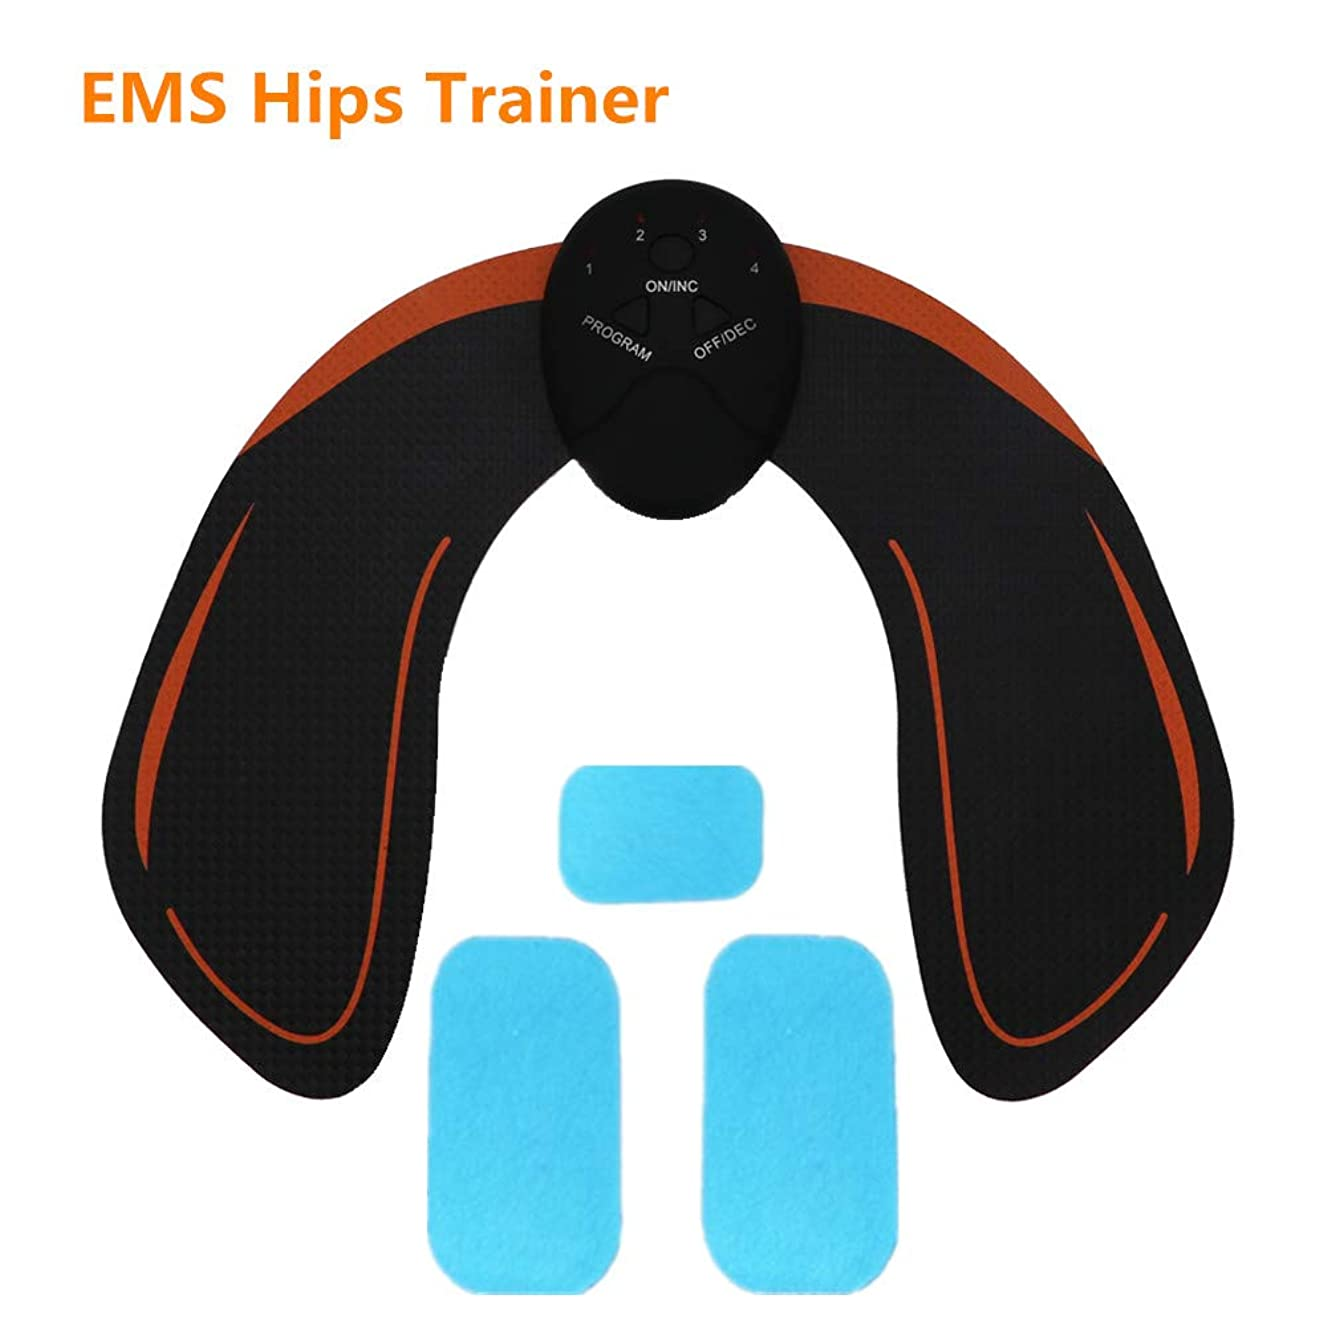 EMS Hips Trainer, ABS Butt Toner with 3 pcs Replacement Gel Pads - Butt Lifting Buttocks Enhancement Device Hips Shaping Equipment for Men and Women